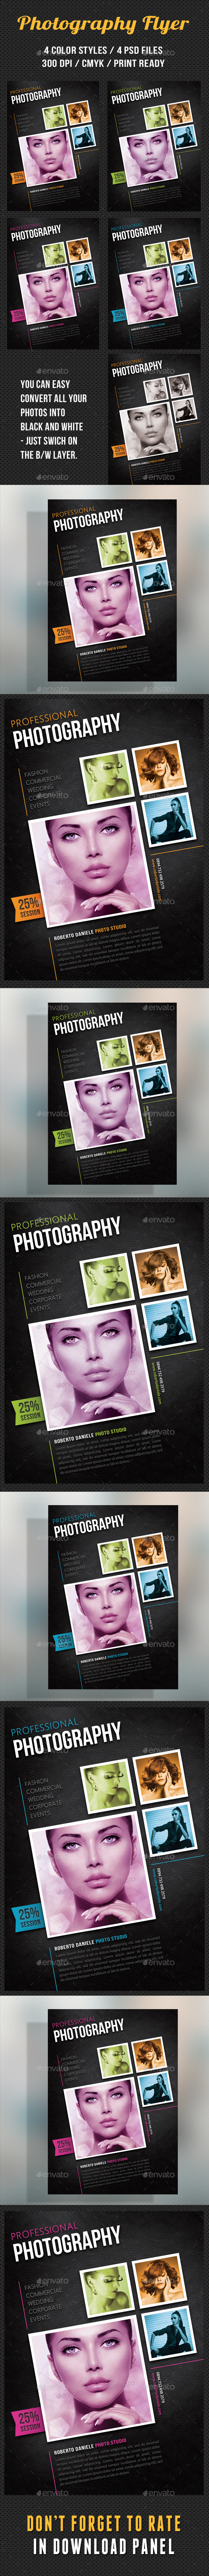 GraphicRiver Photography Studio Flyer 11 8980164